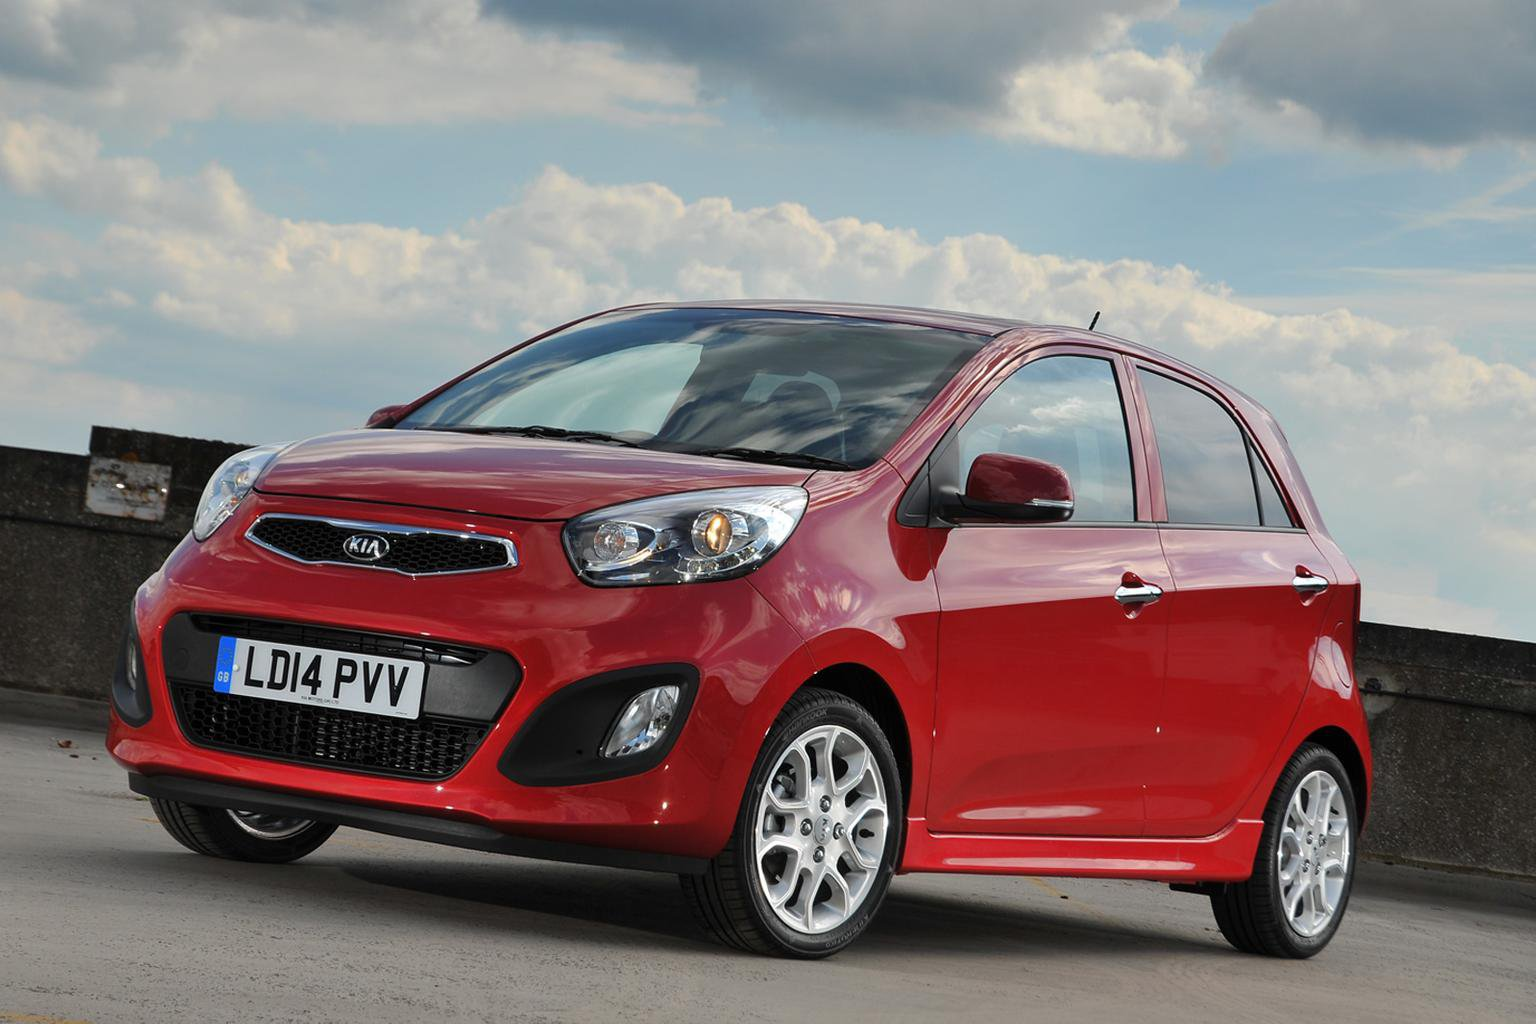 Deal of the Day: Kia Picanto